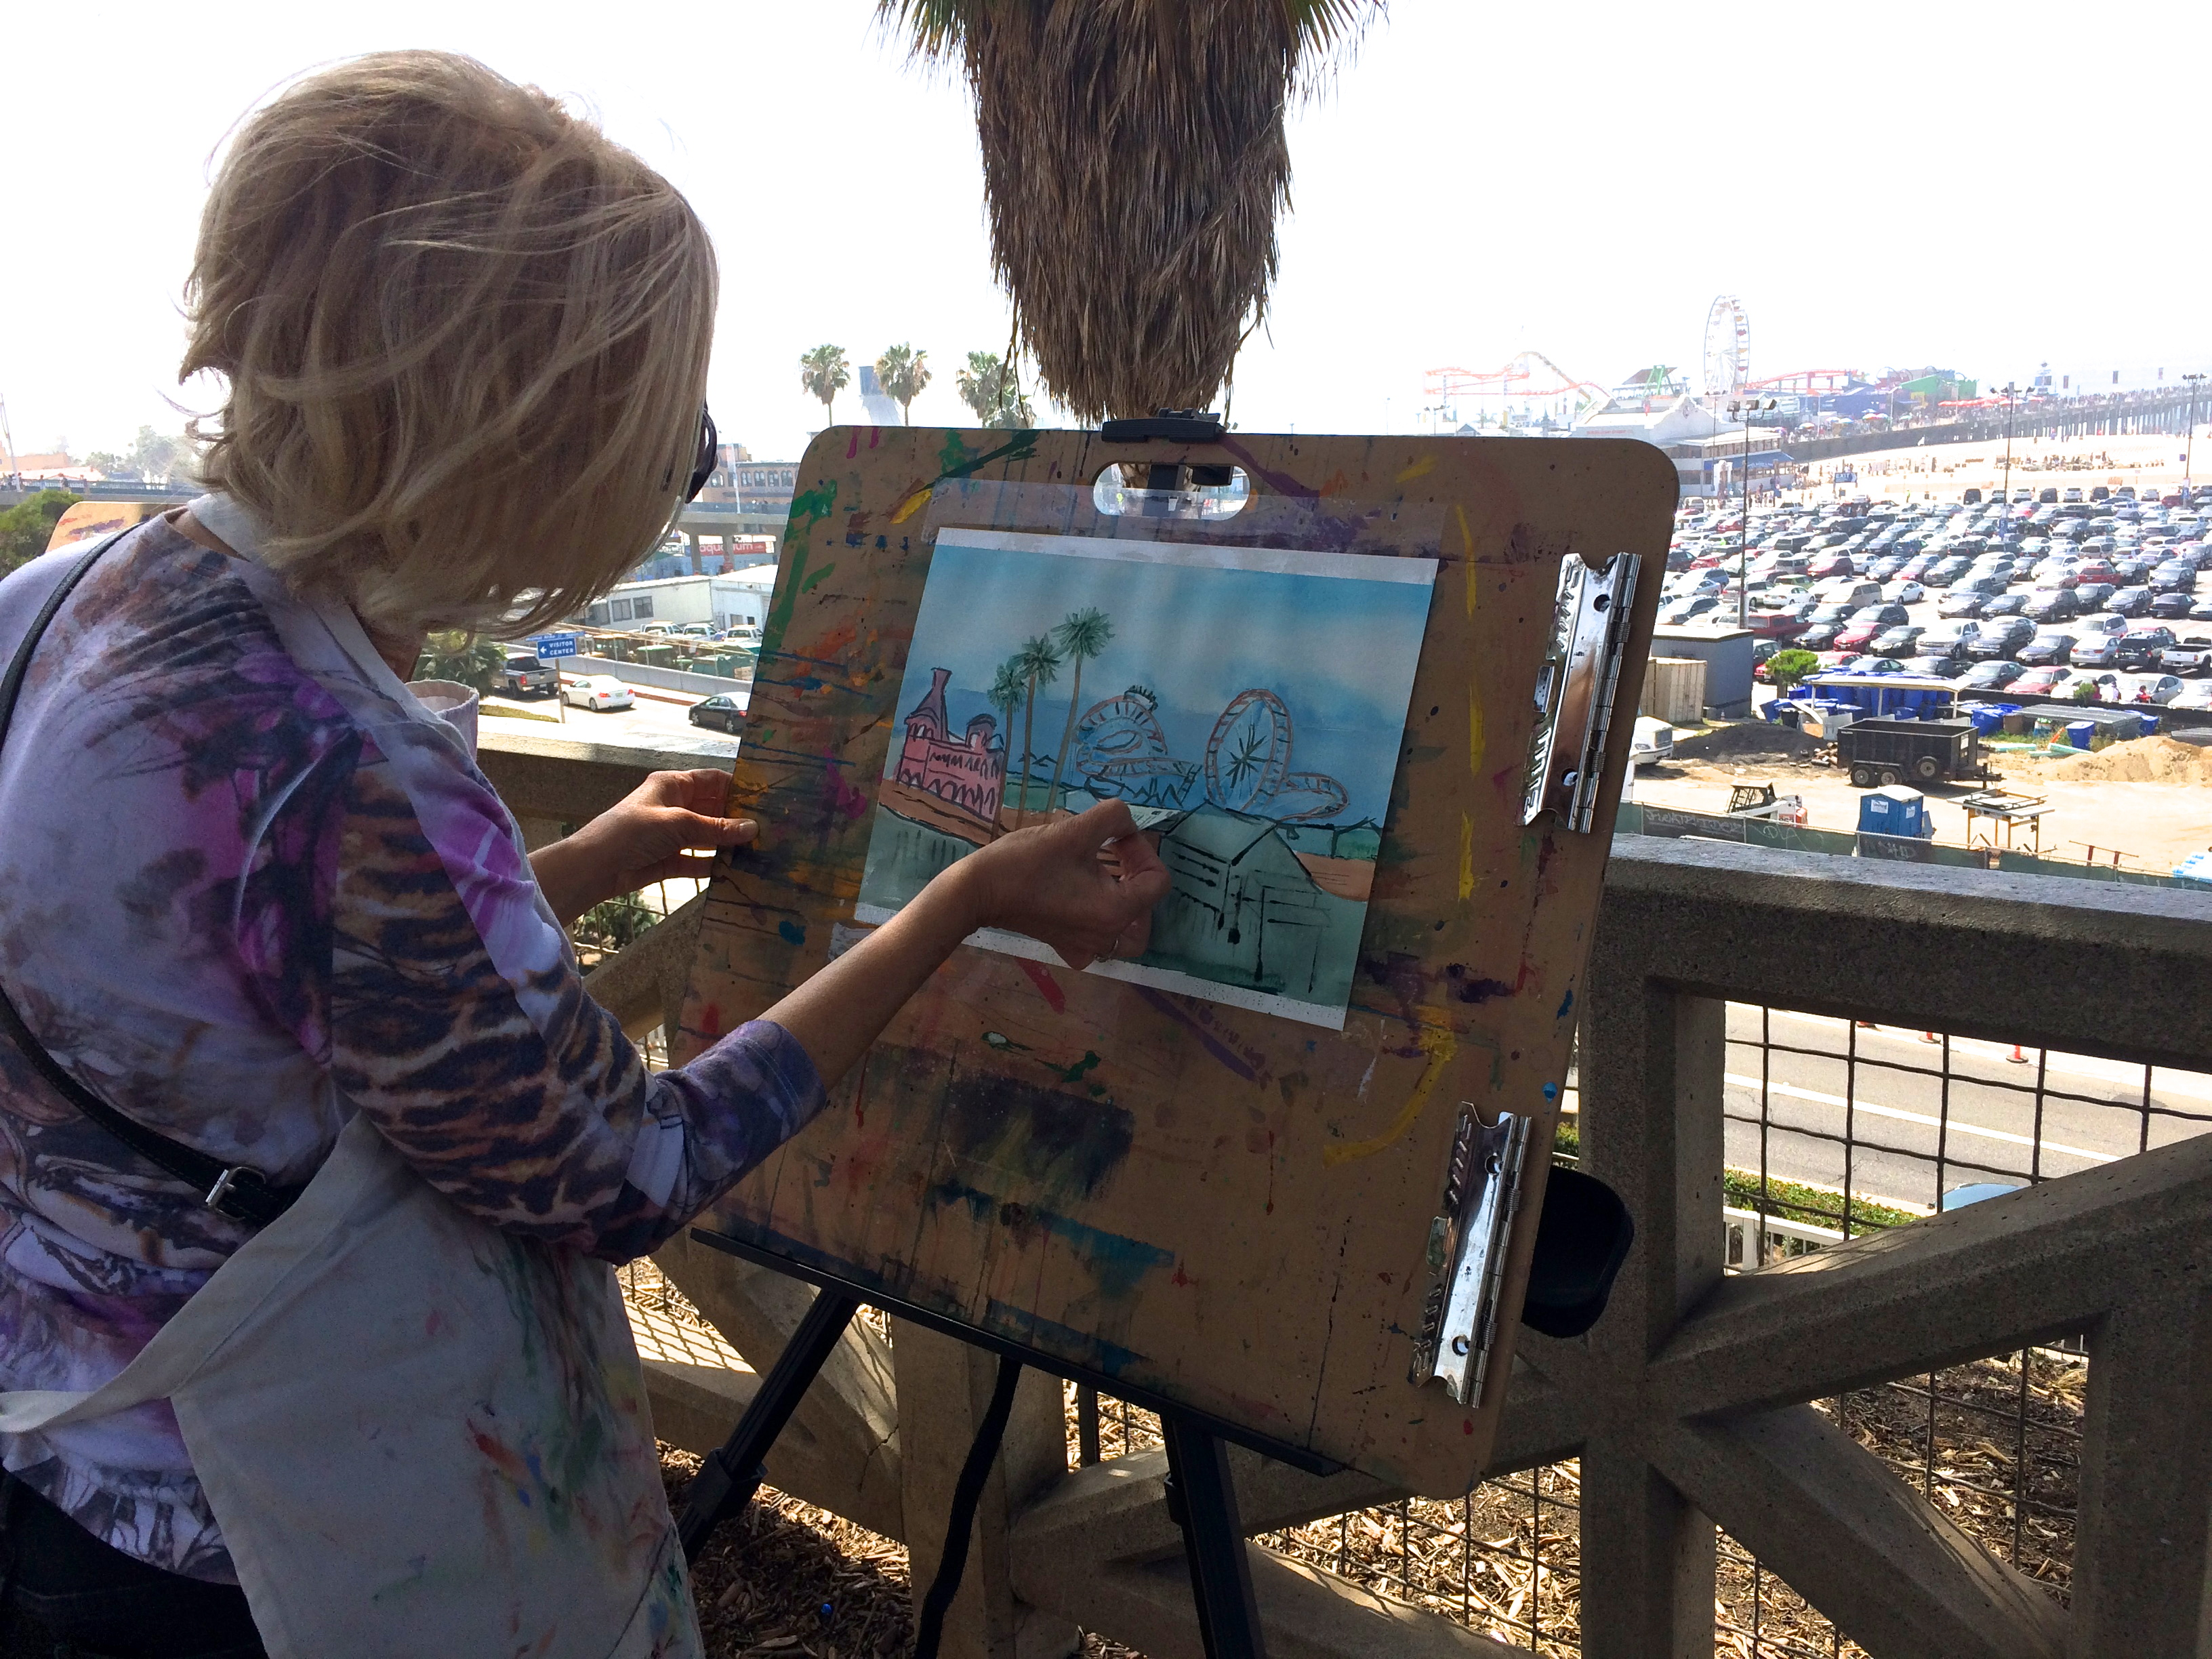 Painting the Santa Monica Pier